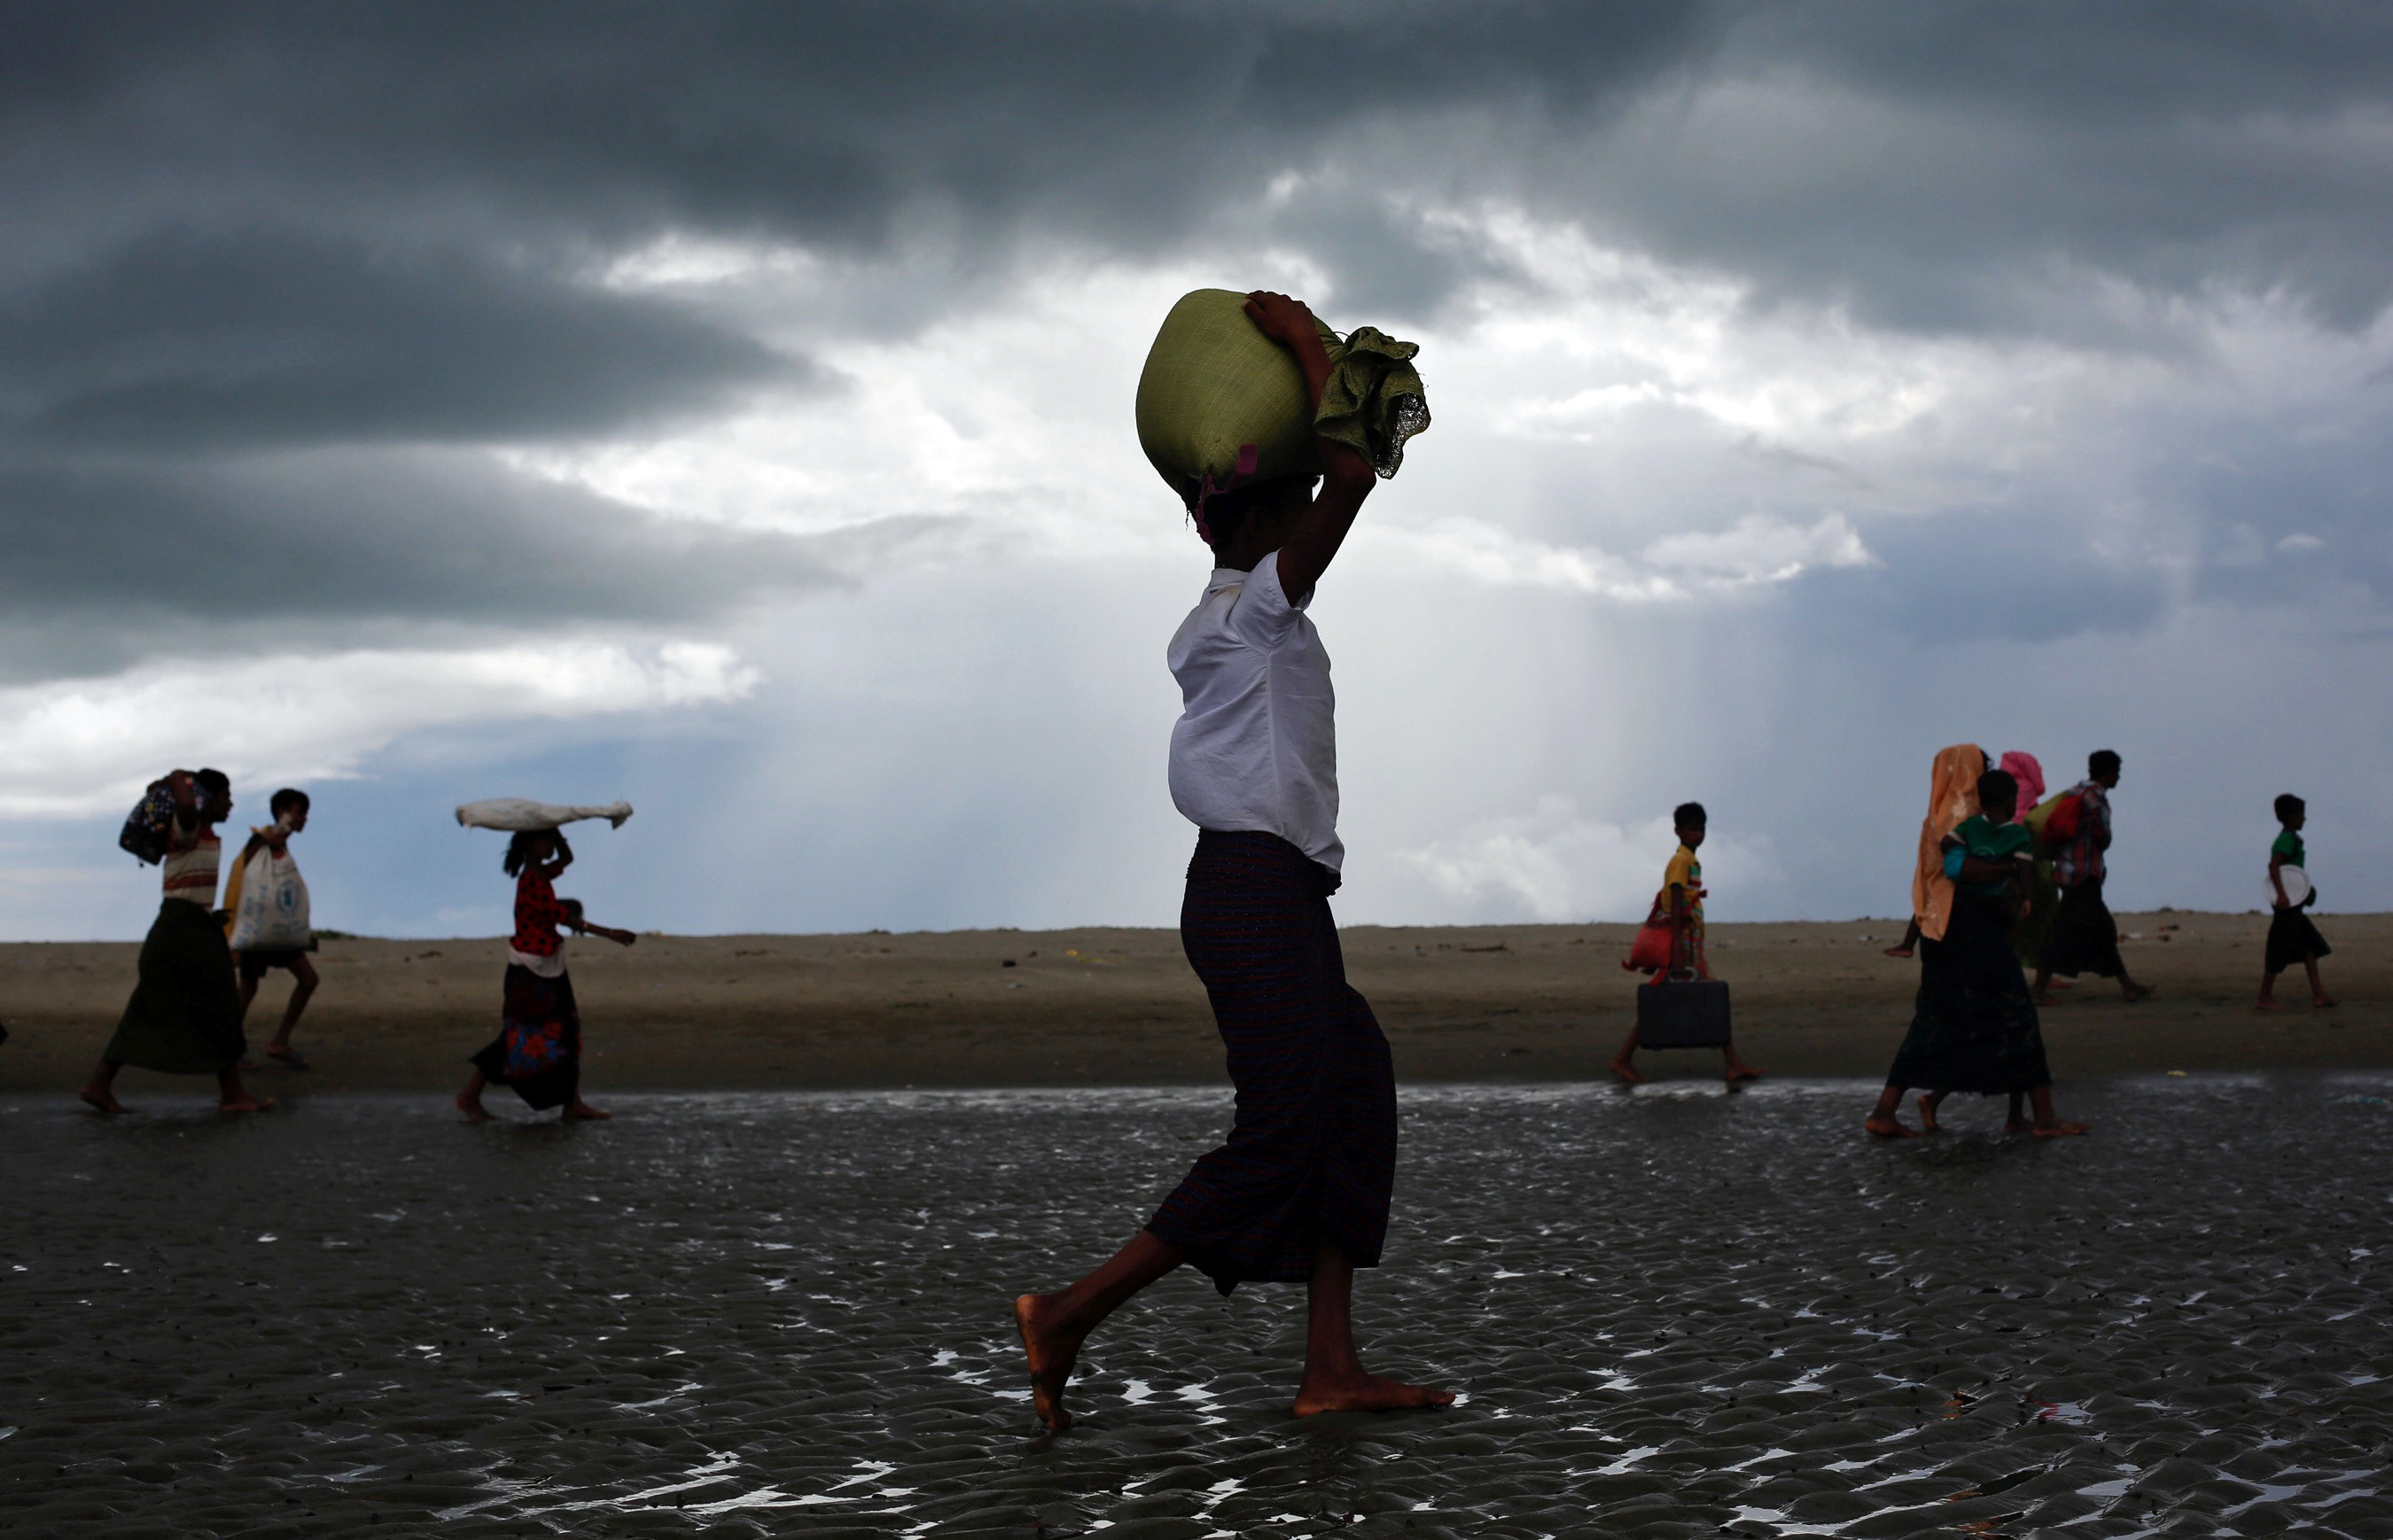 Rohingya refugees walk on the shore after crossing the Bangladesh-Myanmar border by boat through the Bay of Bengal in Shah Porir Dwip, Bangladesh September 11, 2017. REUTERS/Danish Siddiqui